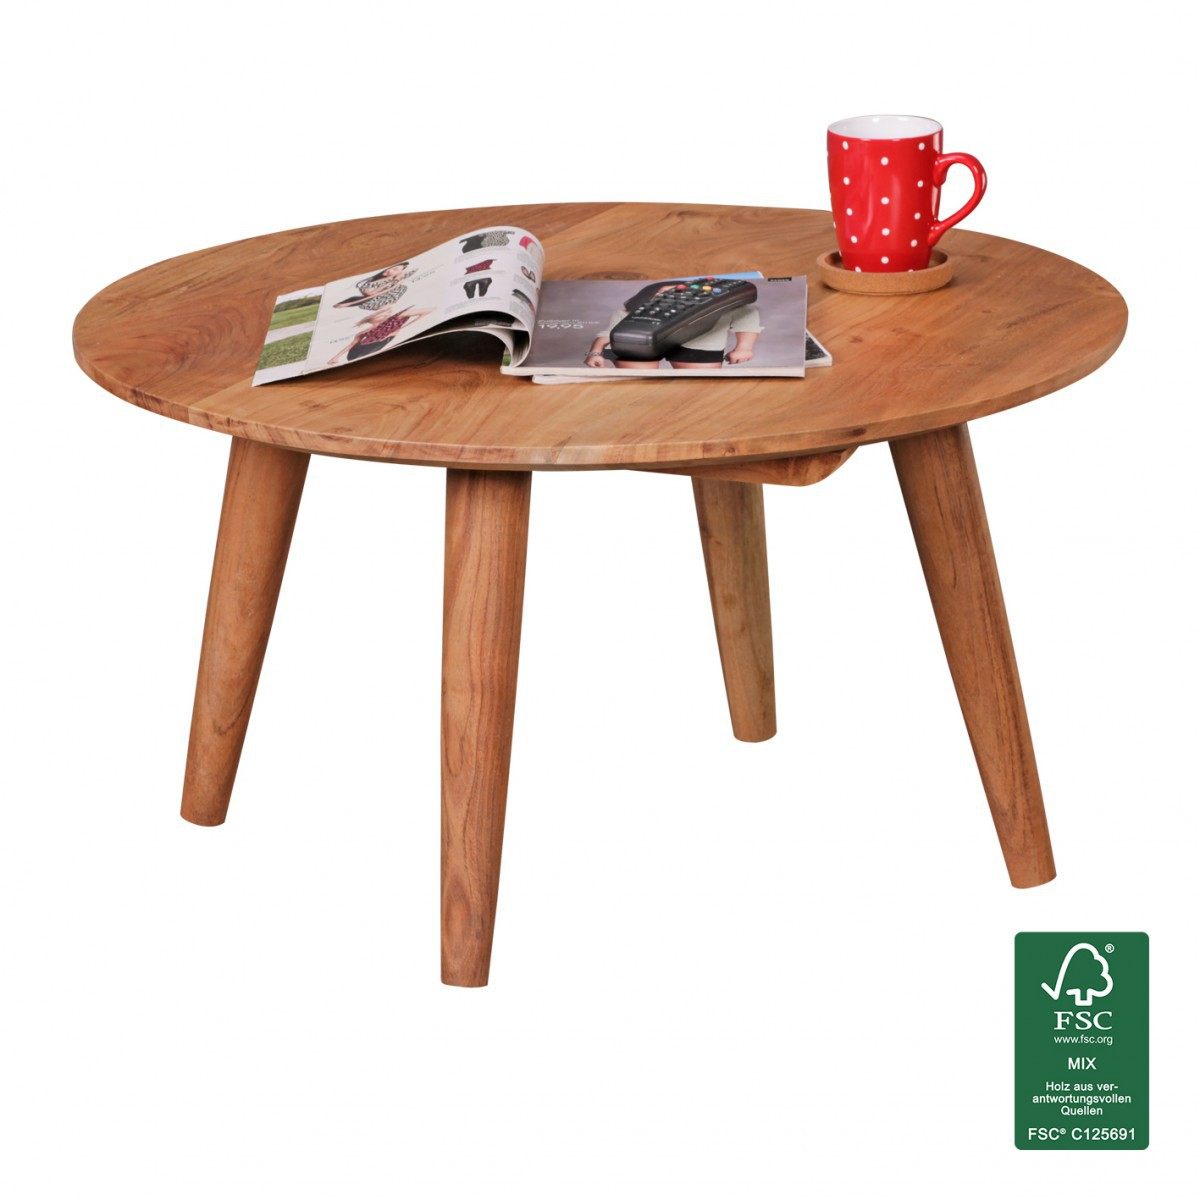 Finebuy table basse en bois massif acacia table basse - Table basse ronde industrielle ...